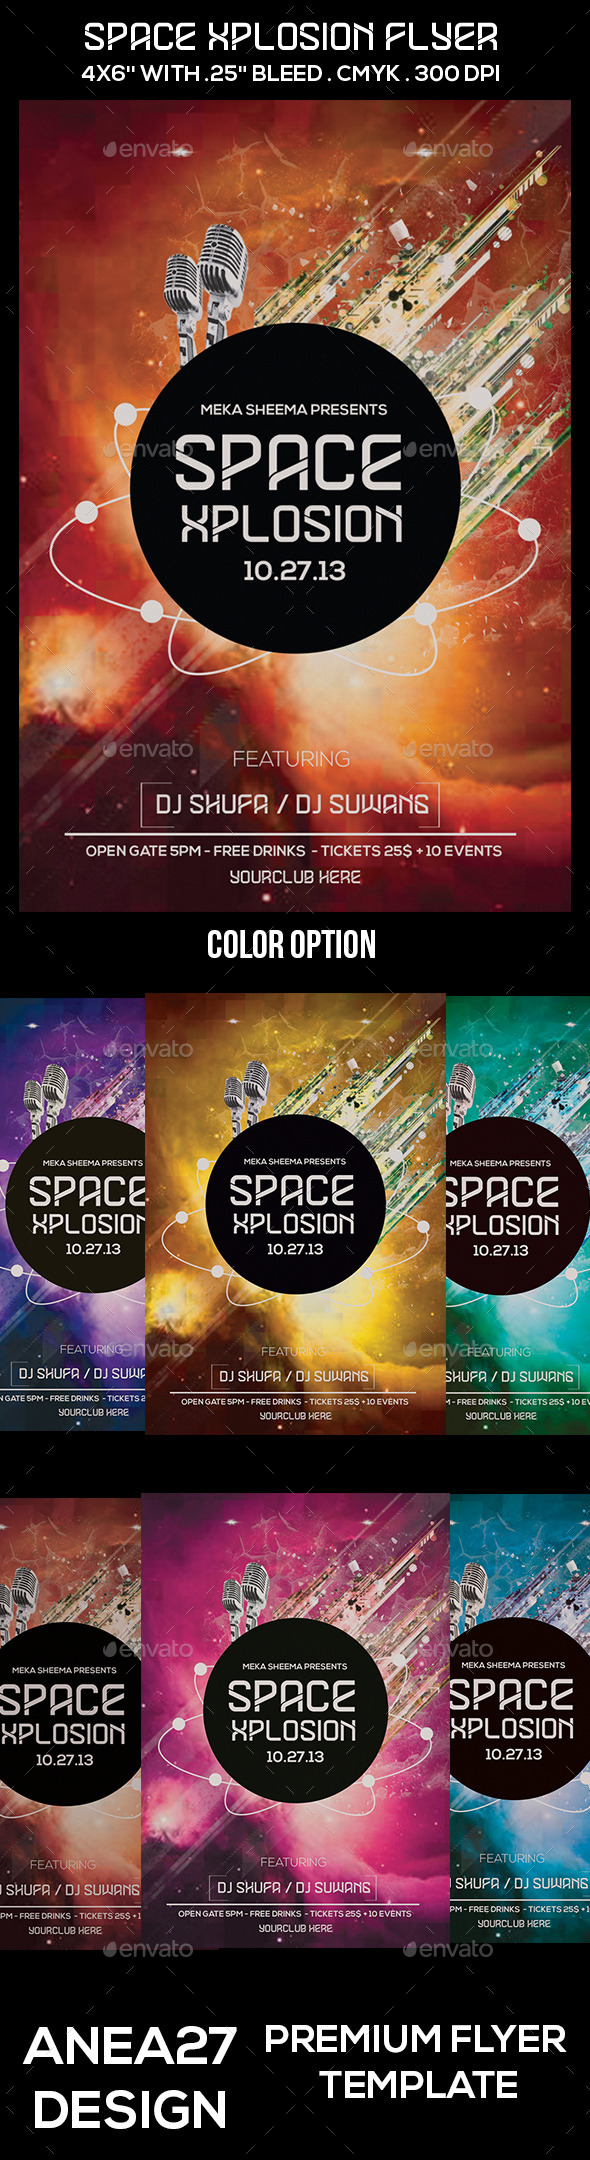 Space Xplosion Flyer